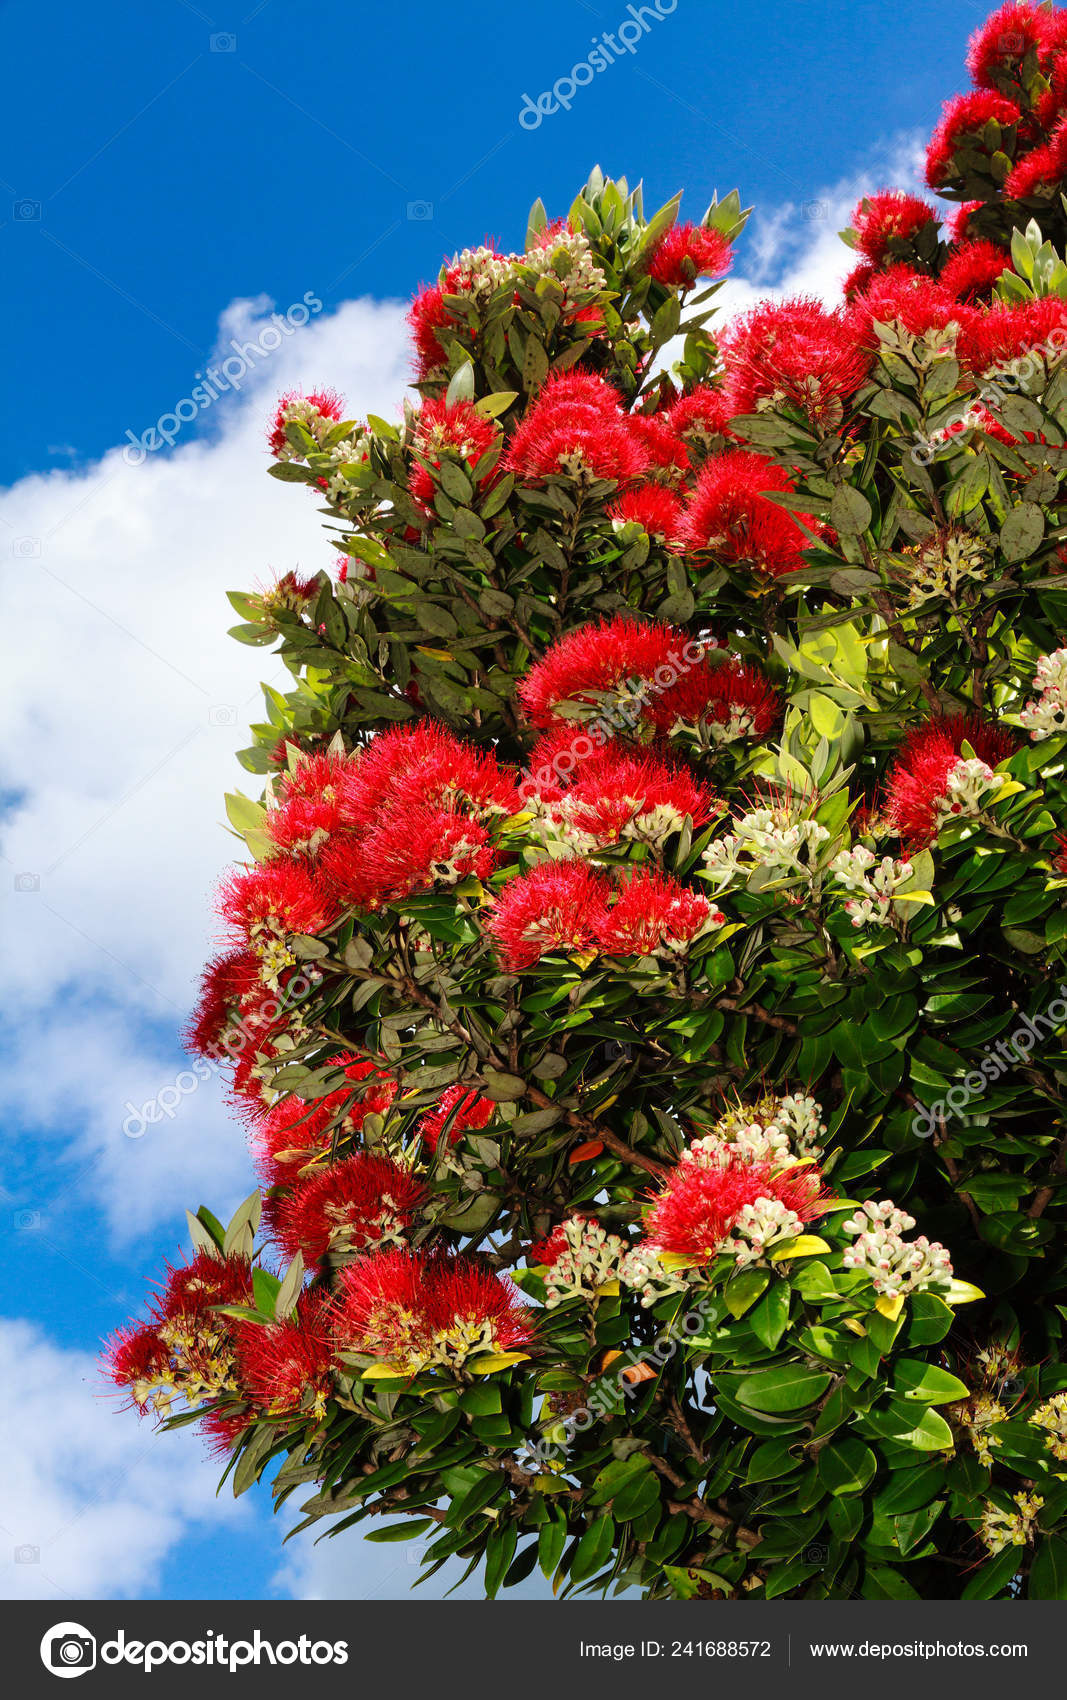 New Zealand Christmas Tree.Pohutukawa Tree Metrosideros Excelsa Also Known New Zealand